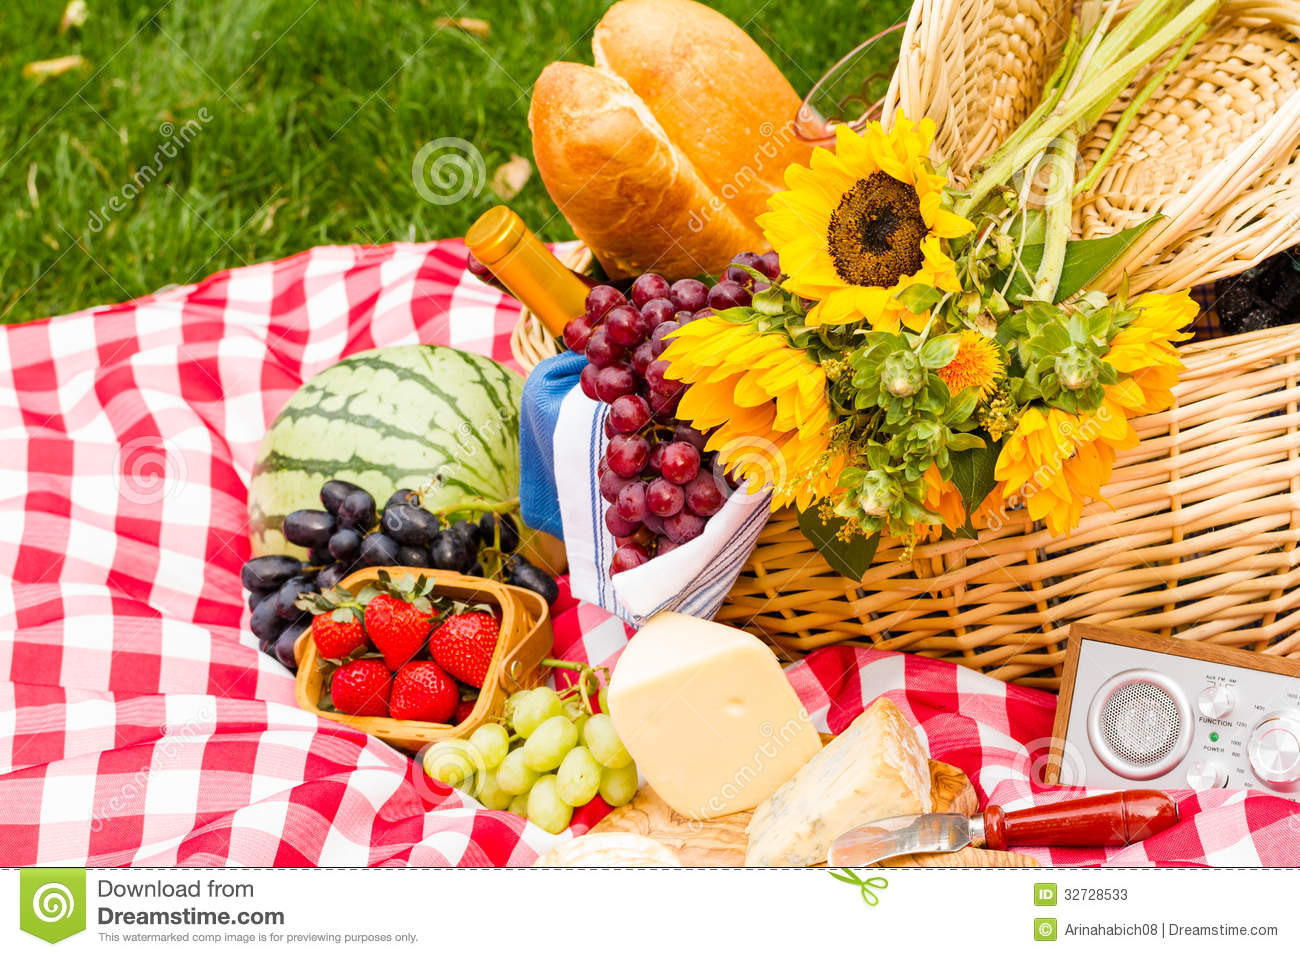 Where To Get A Picnic Basket With Food In It